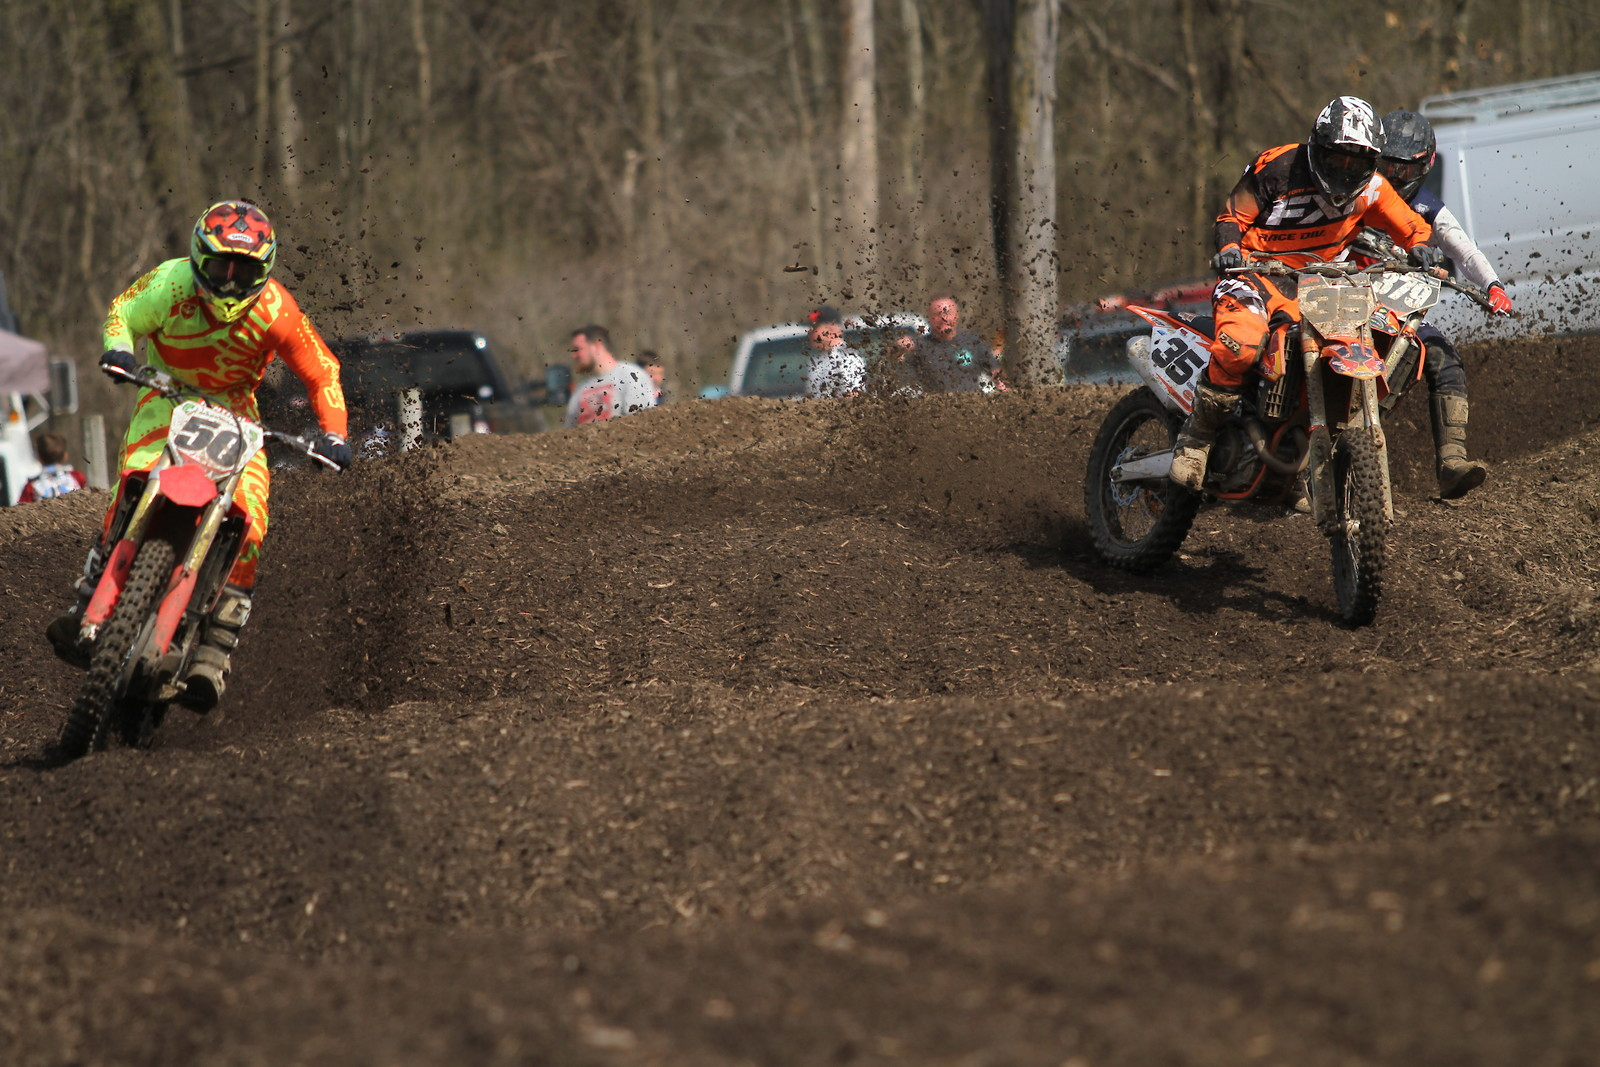 A class battle for 3rd - midwest_moto_media - Motocross Pictures - Vital MX